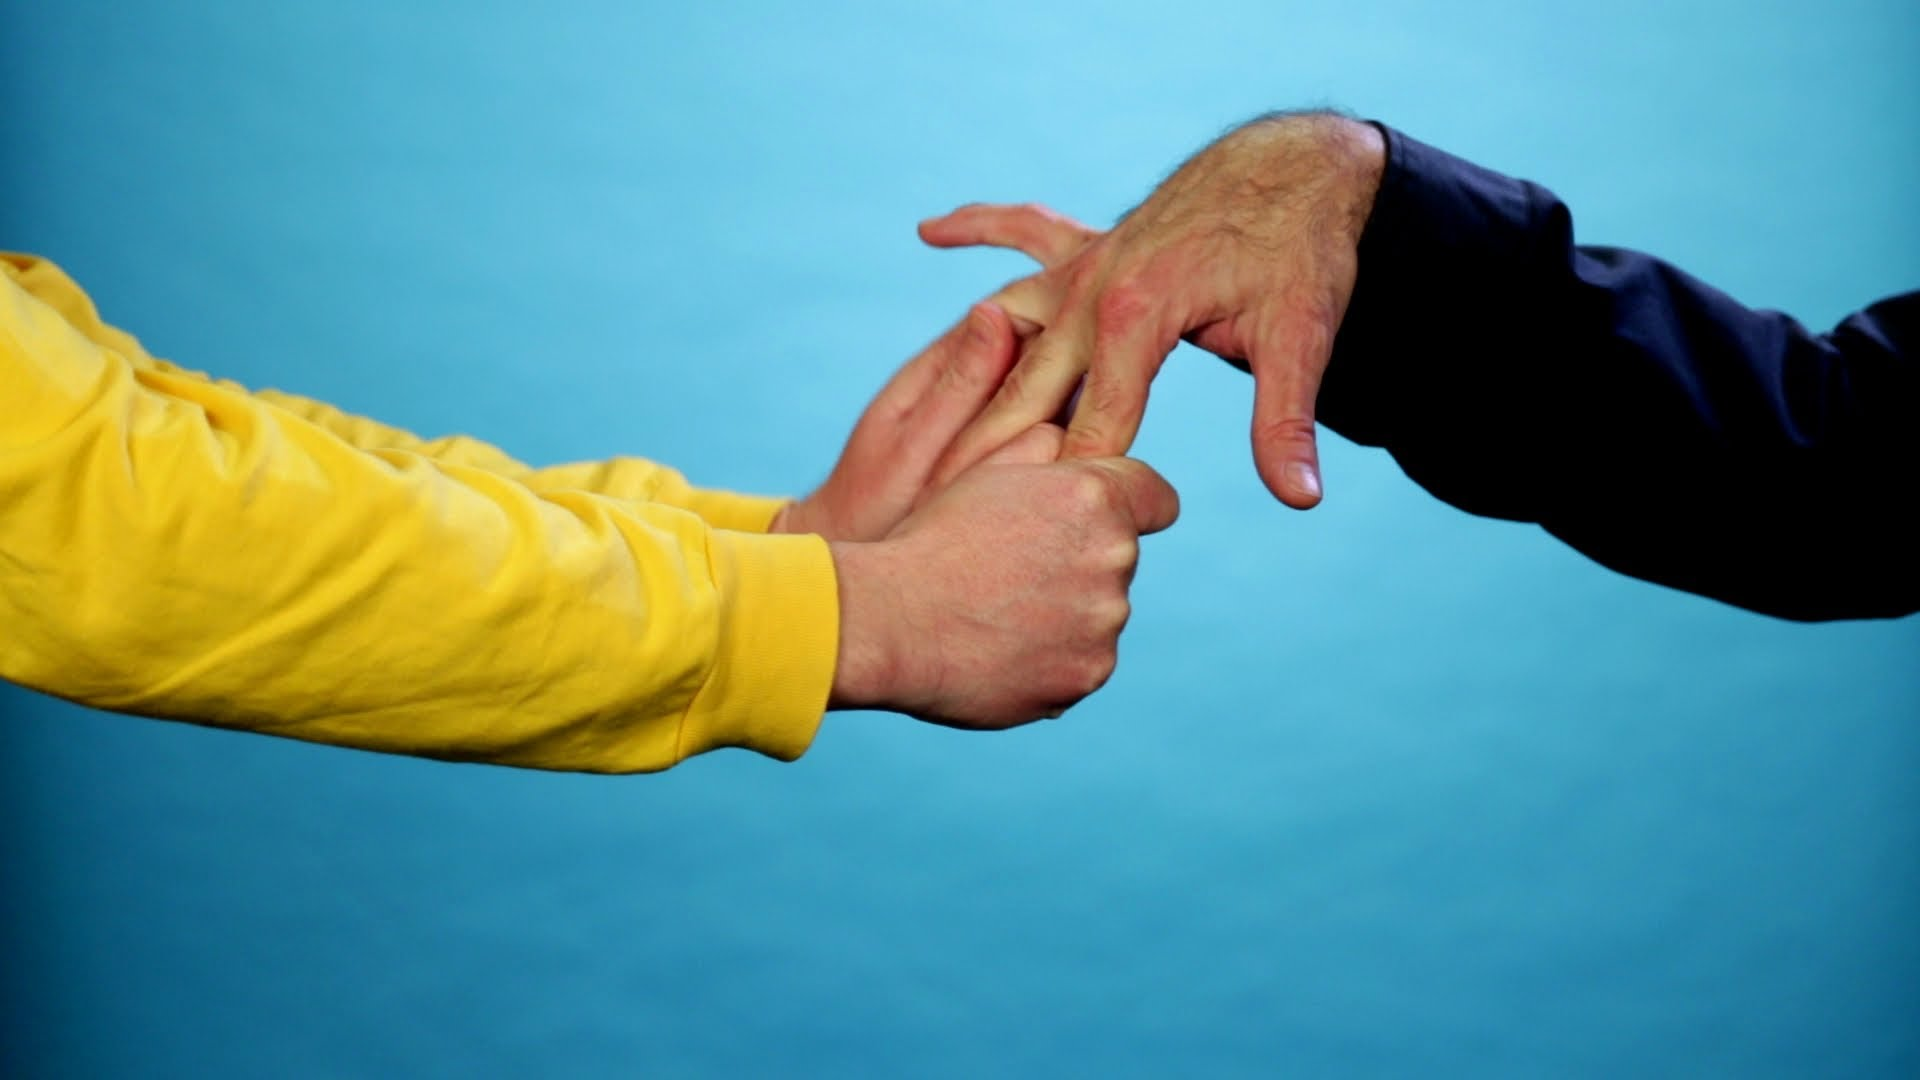 the good guide to shaking hands good a video tutorial on